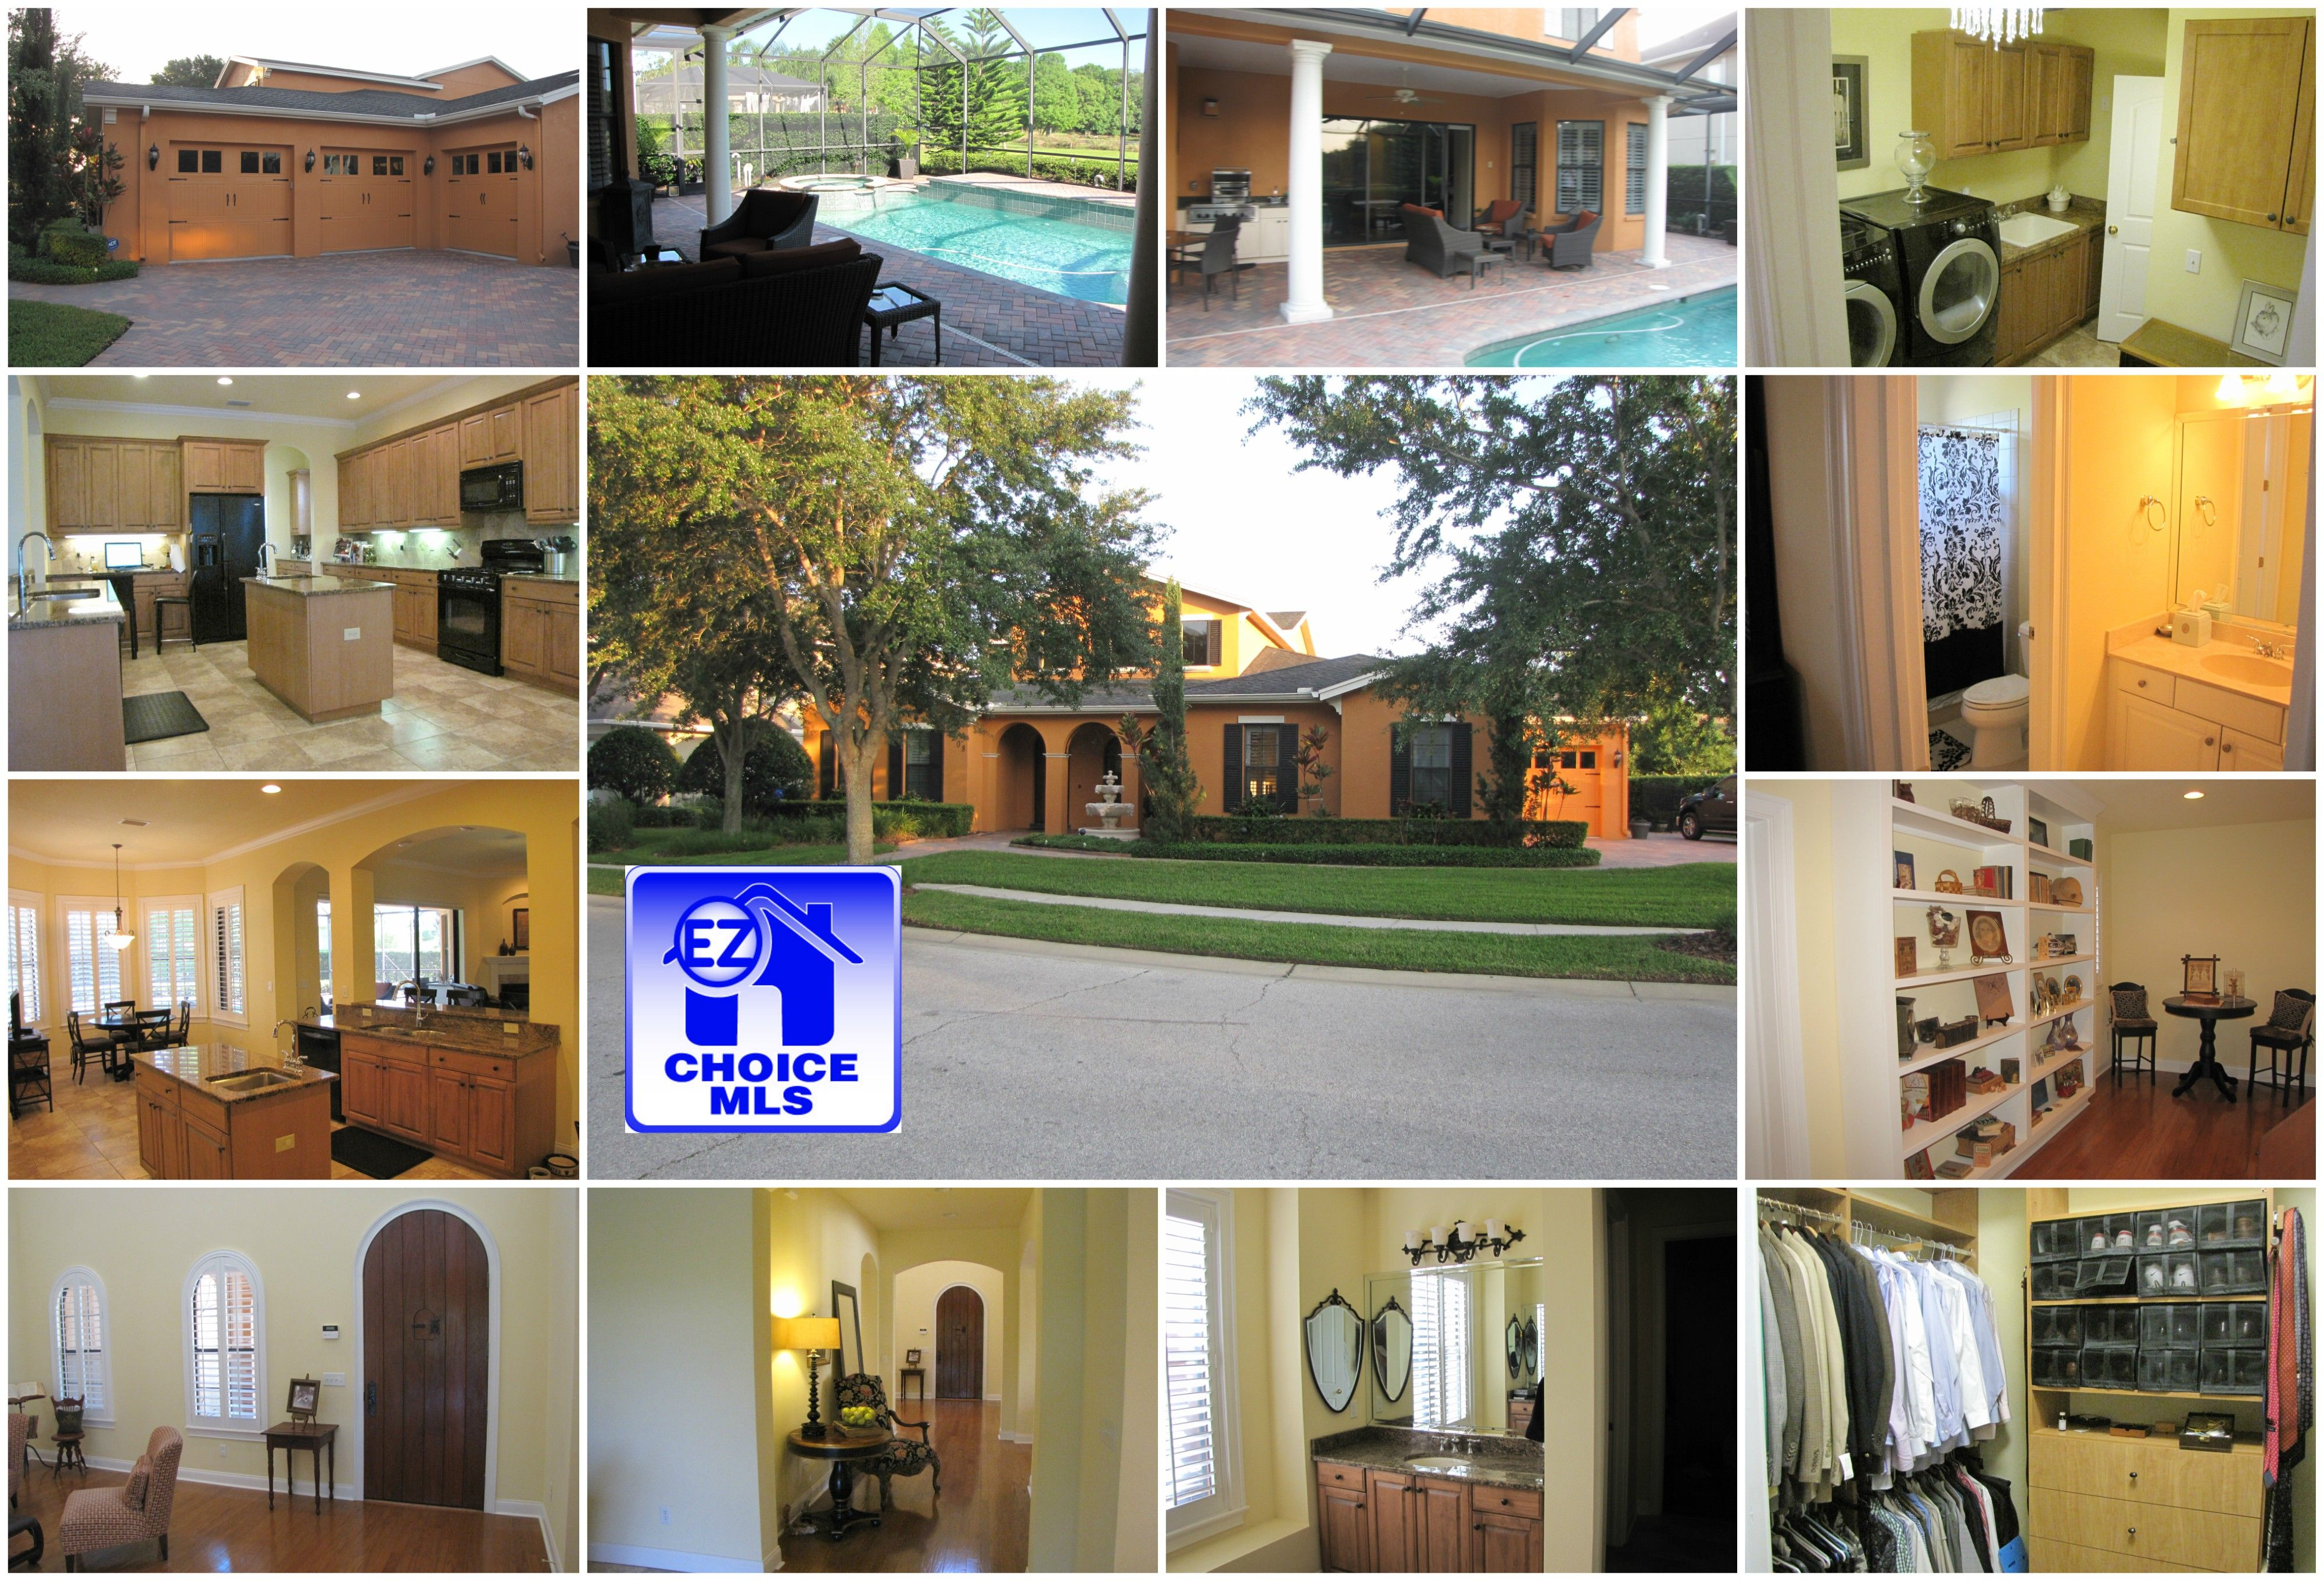 Beautiful upscale gated community home surrounded by